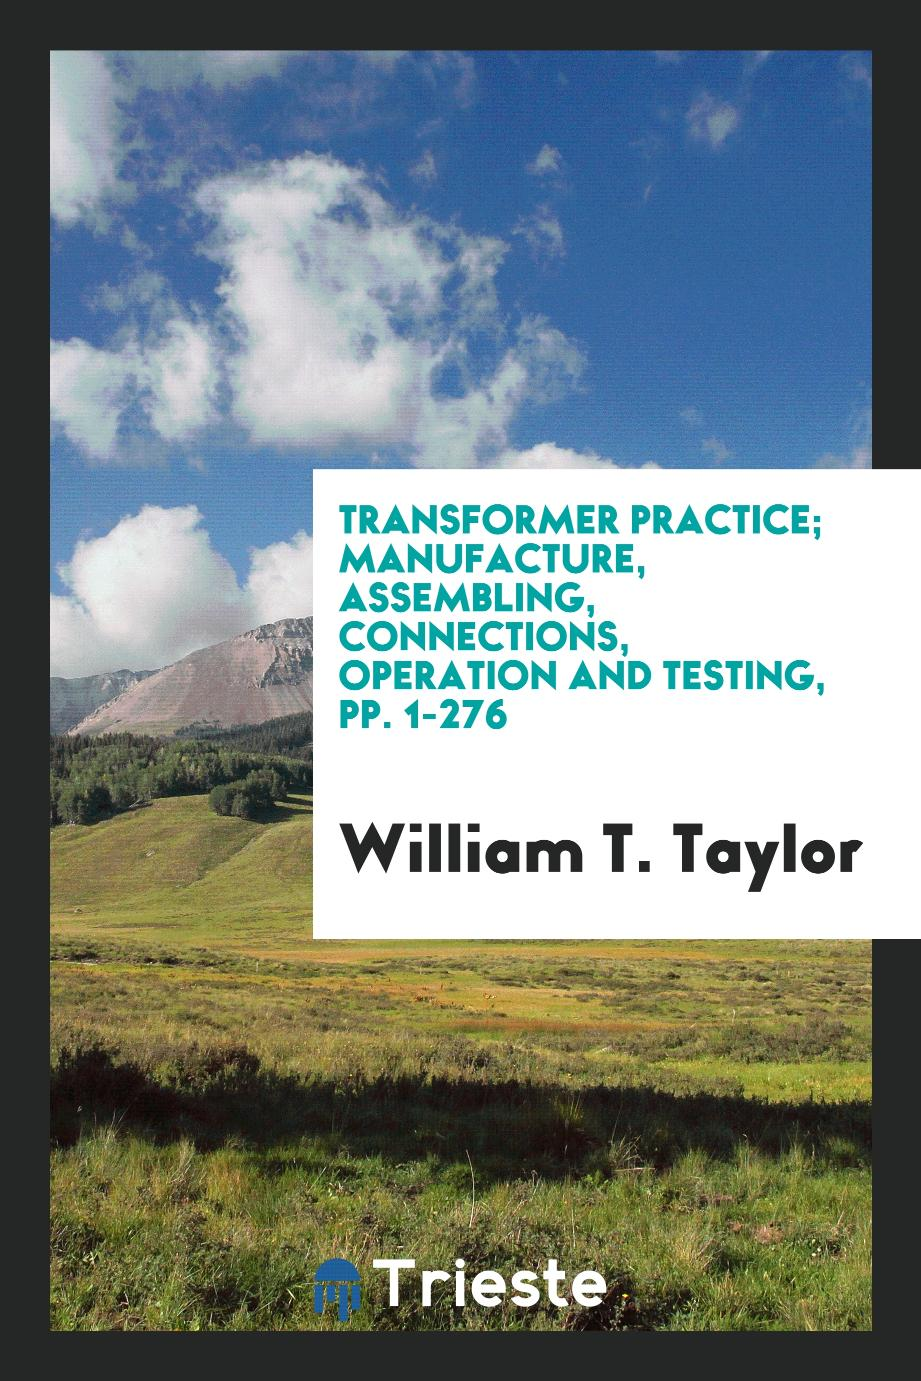 Transformer Practice; Manufacture, Assembling, Connections, Operation and Testing, pp. 1-276